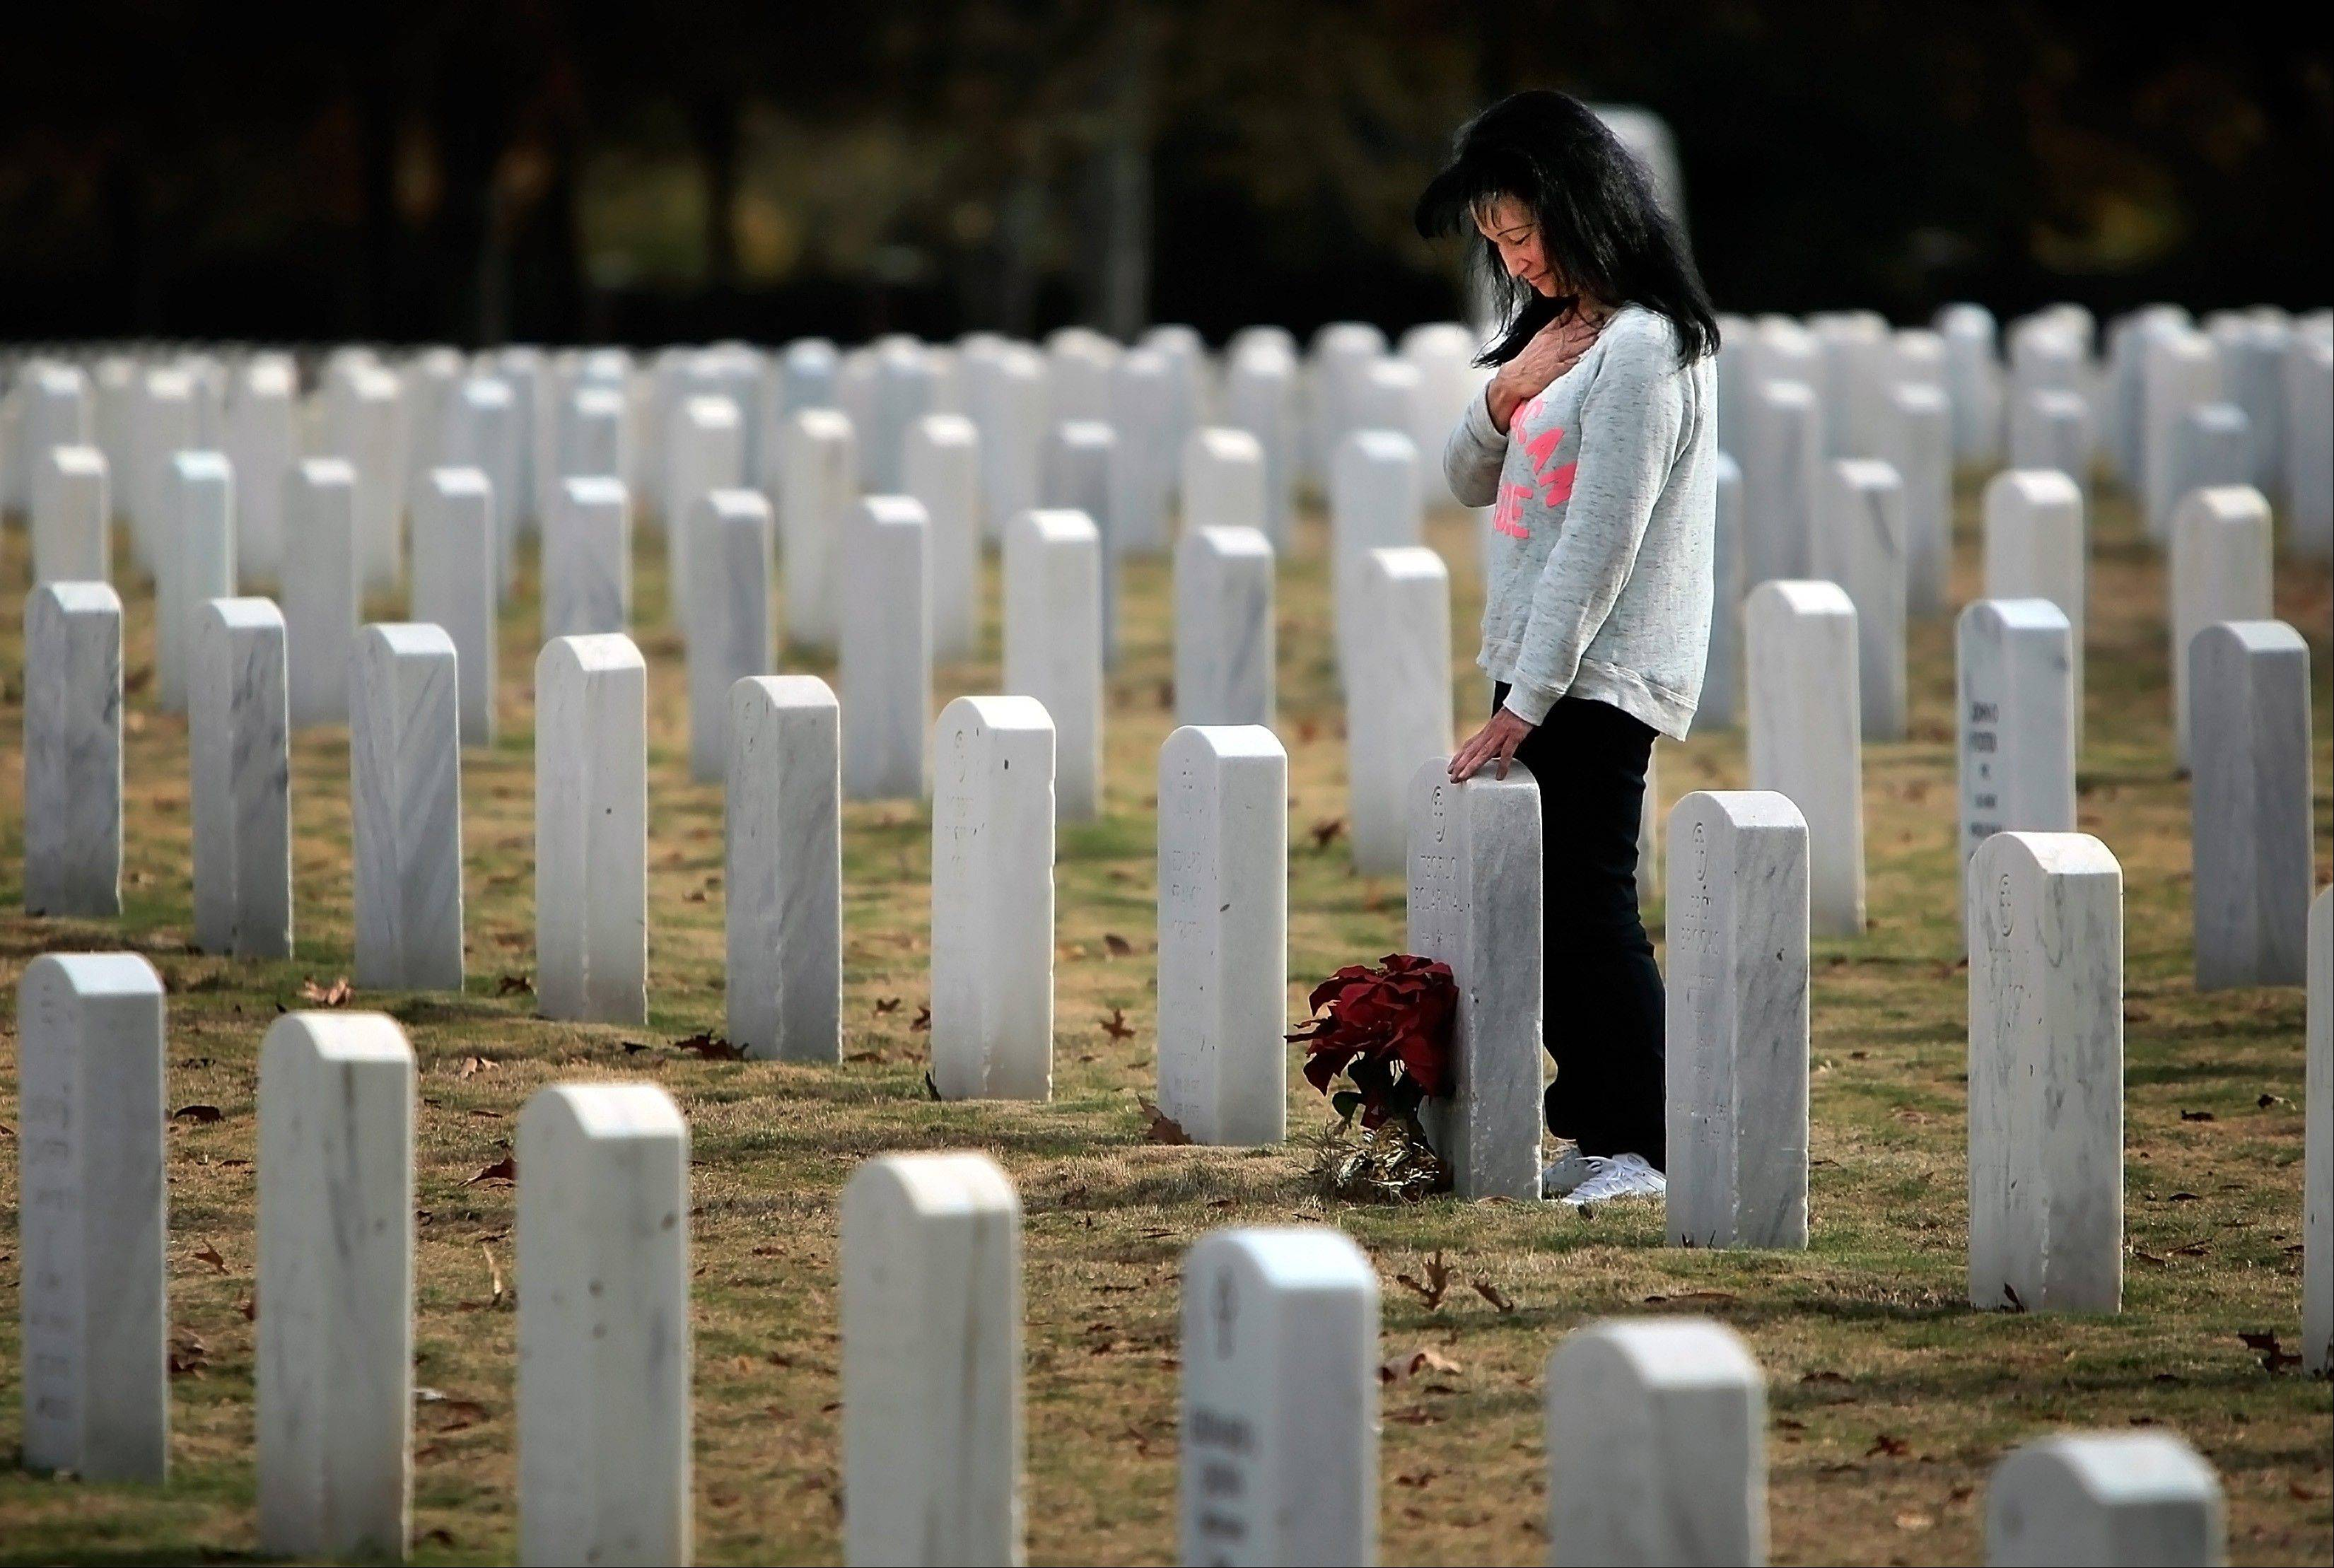 As a band nearby plays the National Anthem, Priscilla Eclarinal pays her respects to her father's grave at the annual Veterans Day ceremony at Memphis National Cemetery in Memphis, Tenn., Sunday. Her father, Chief Petty Officer Teofilo Eclarinal, served for 30 years in the U.S. Navy fighting in both World Wa